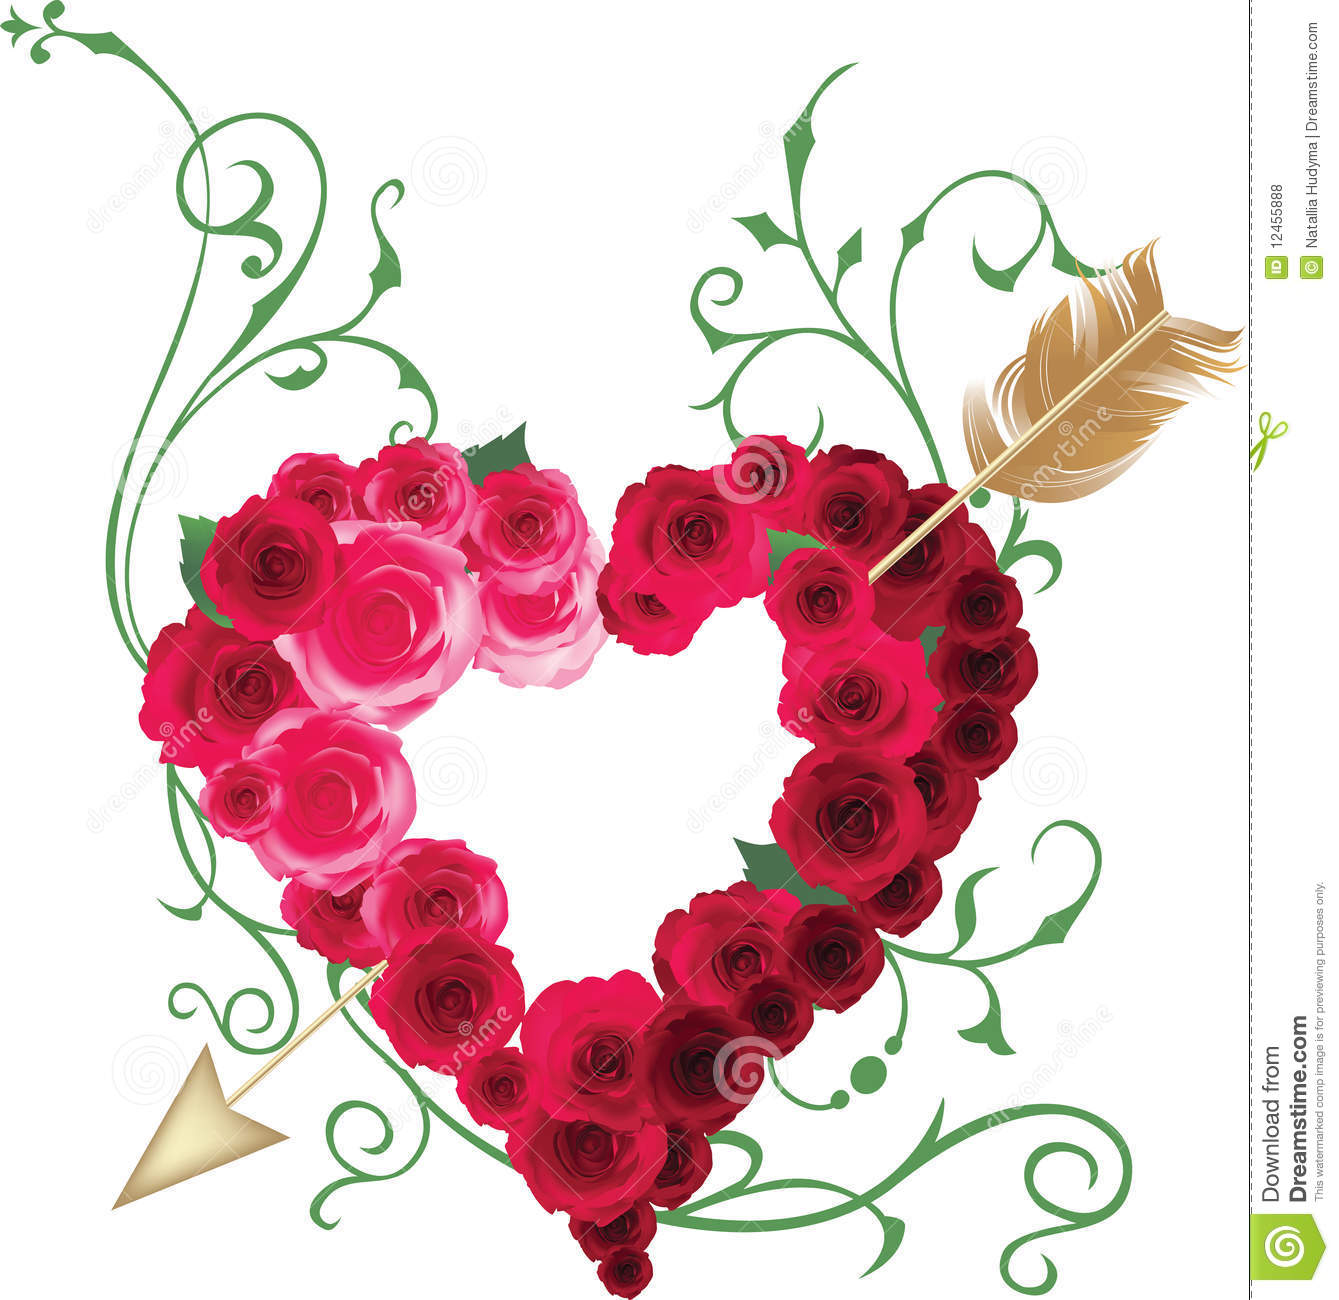 heart and roses background - photo #21